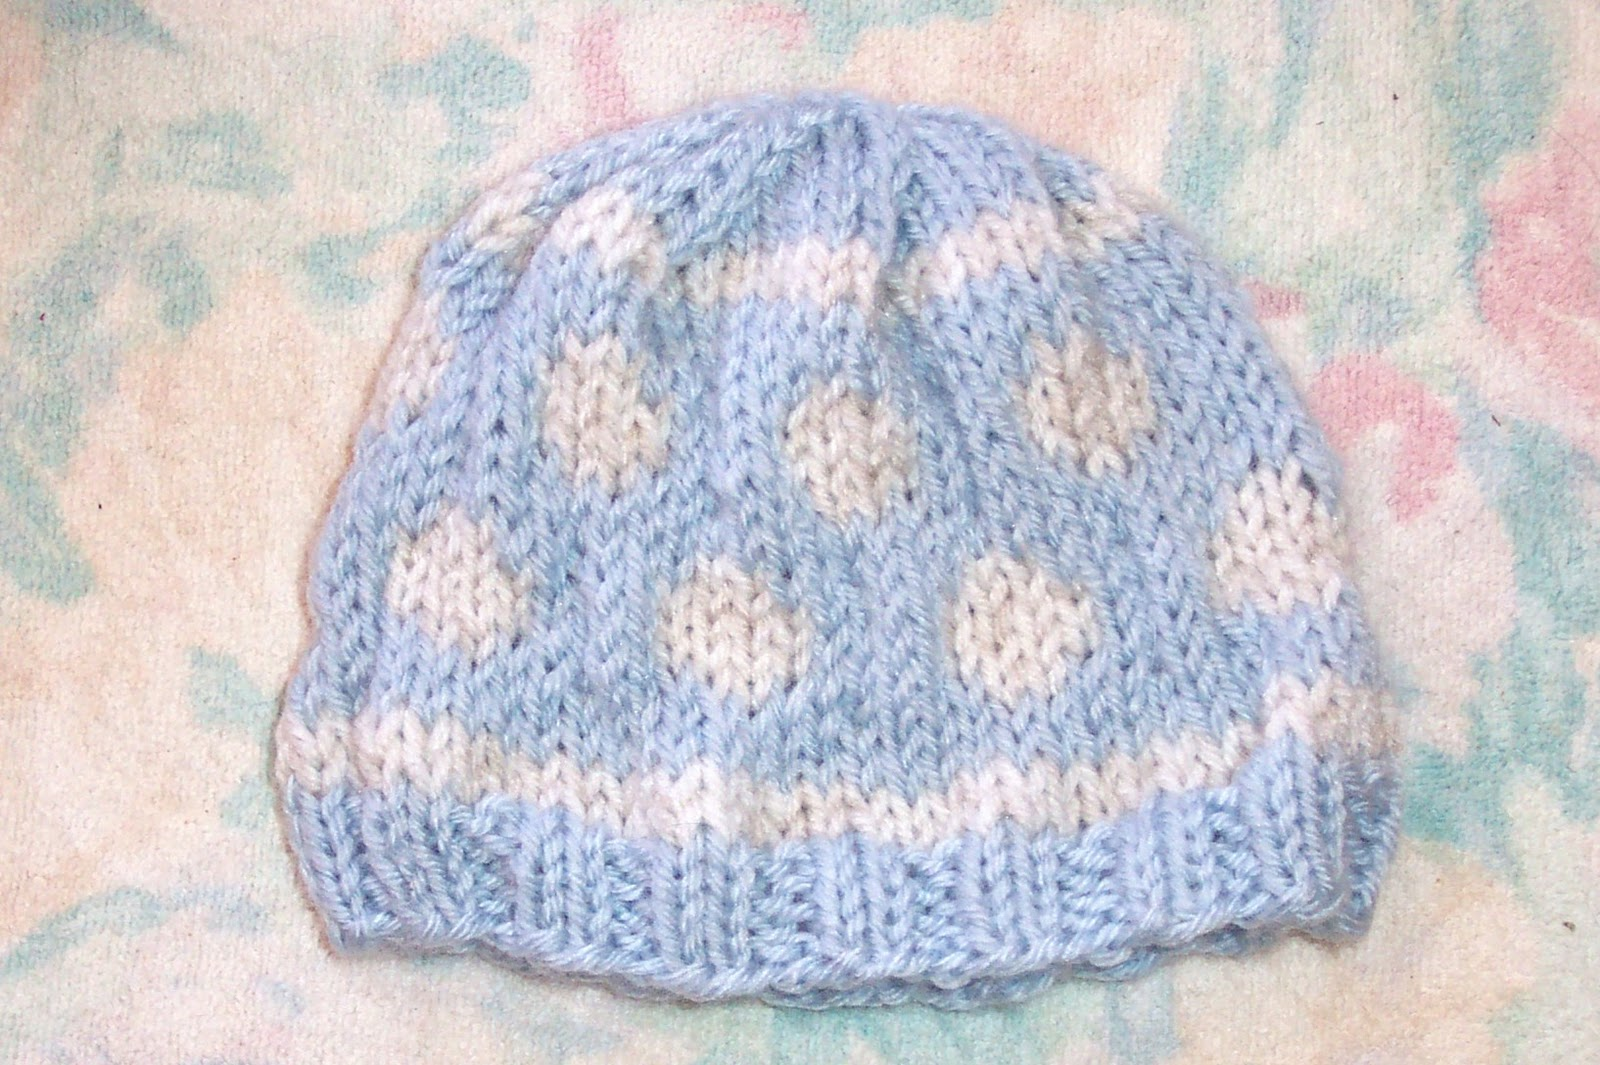 Knit Baby Hats Patterns : SmoothFox Crochet and Knit: SmoothFoxs Baby Bubbles Knit Hat - Free Pattern